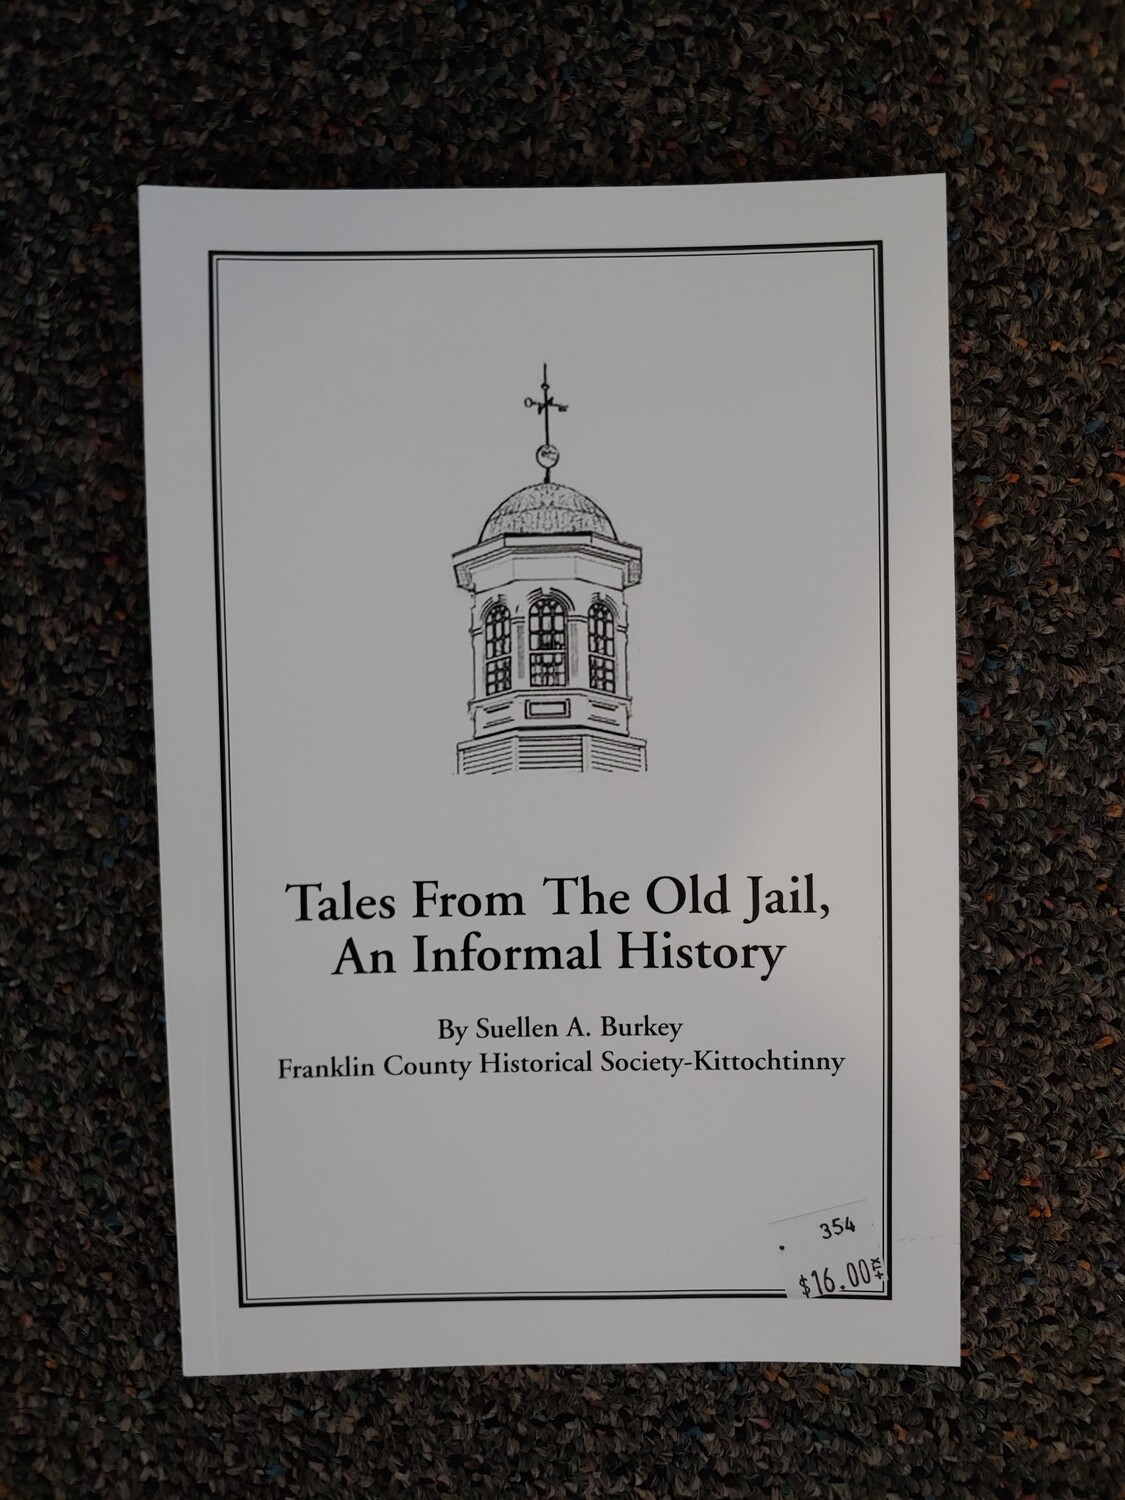 """Tales From the Old Jail """"An Informal History"""""""